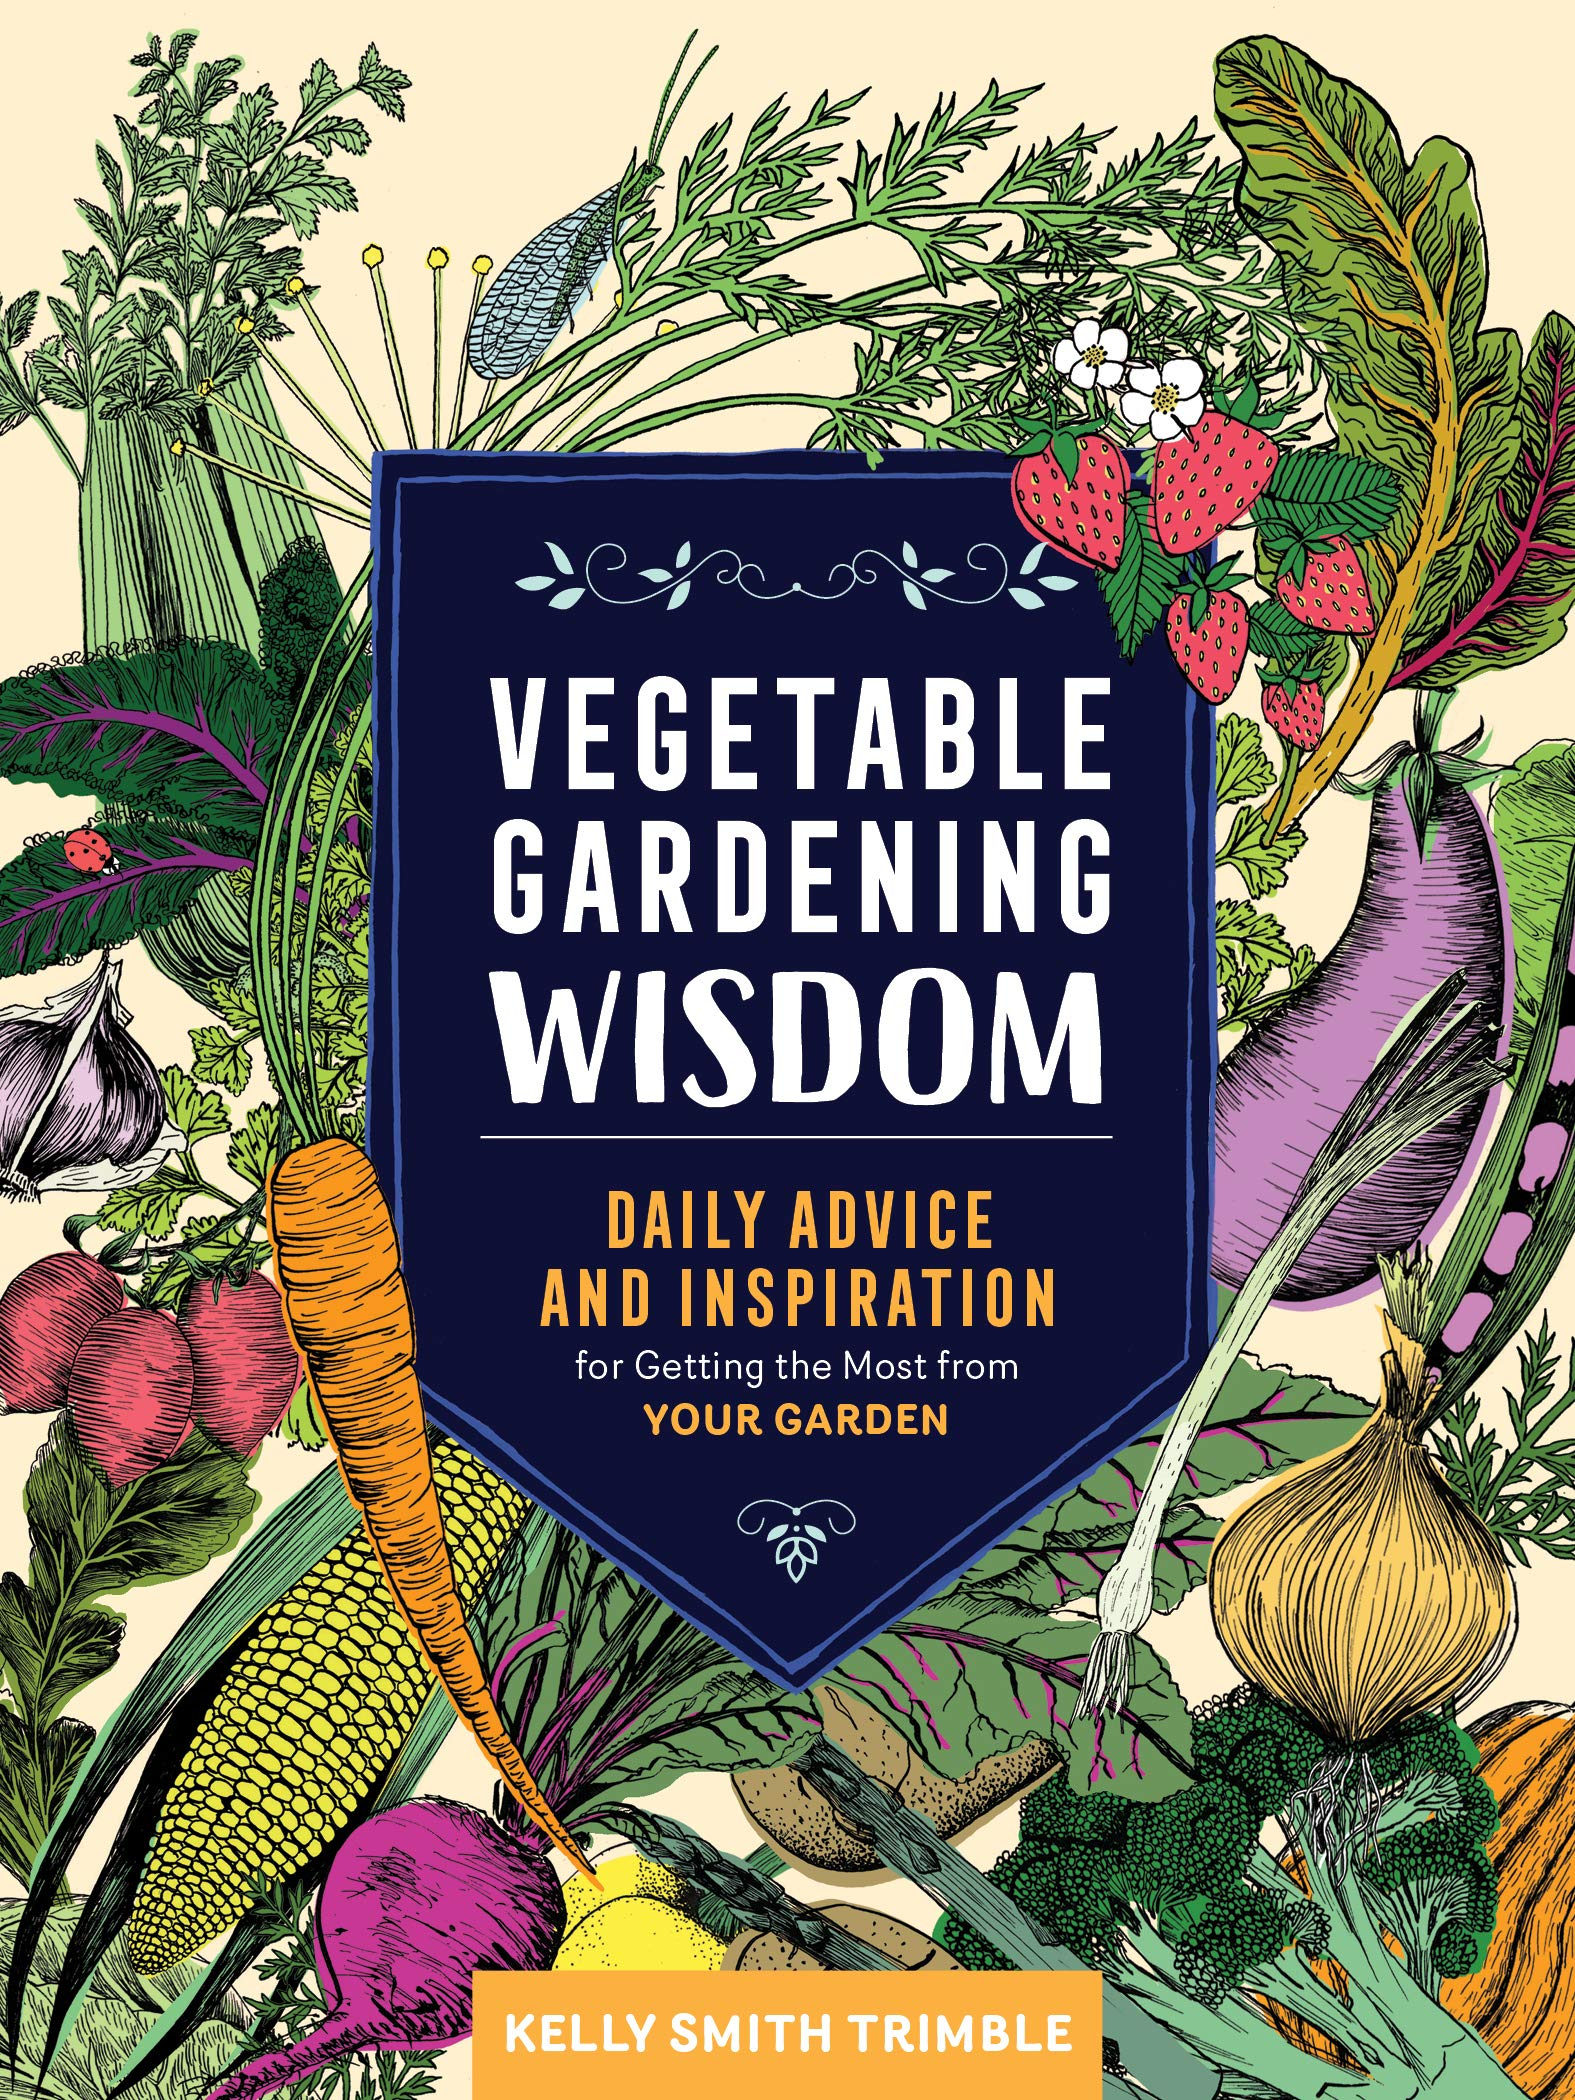 Vegetable Gardening Wisdom: Daily Advice and Inspiration for Getting the Most from Your Garden by Storey Publishing, LLC